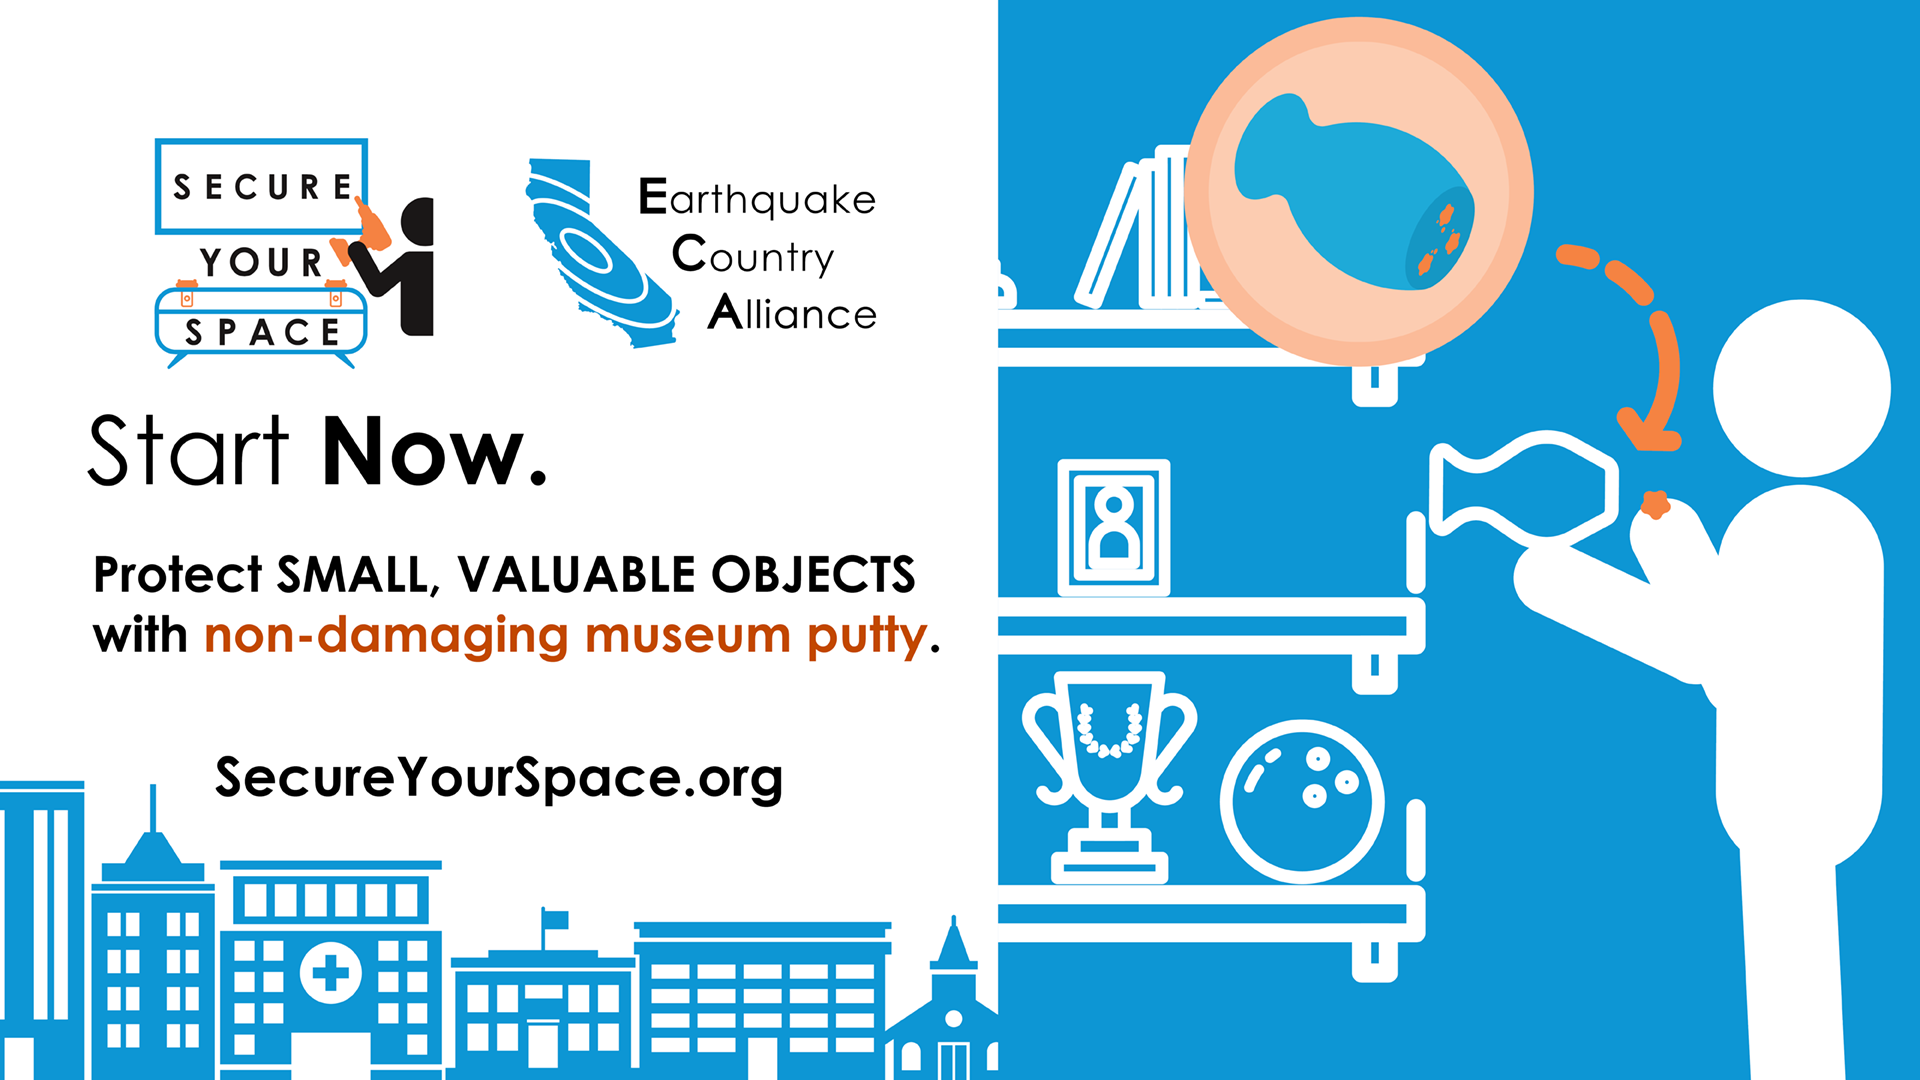 Graphic showing how to secure valuables and small objects for earthquake shaking with museum putty, and promoting SecureYourSpace.org.